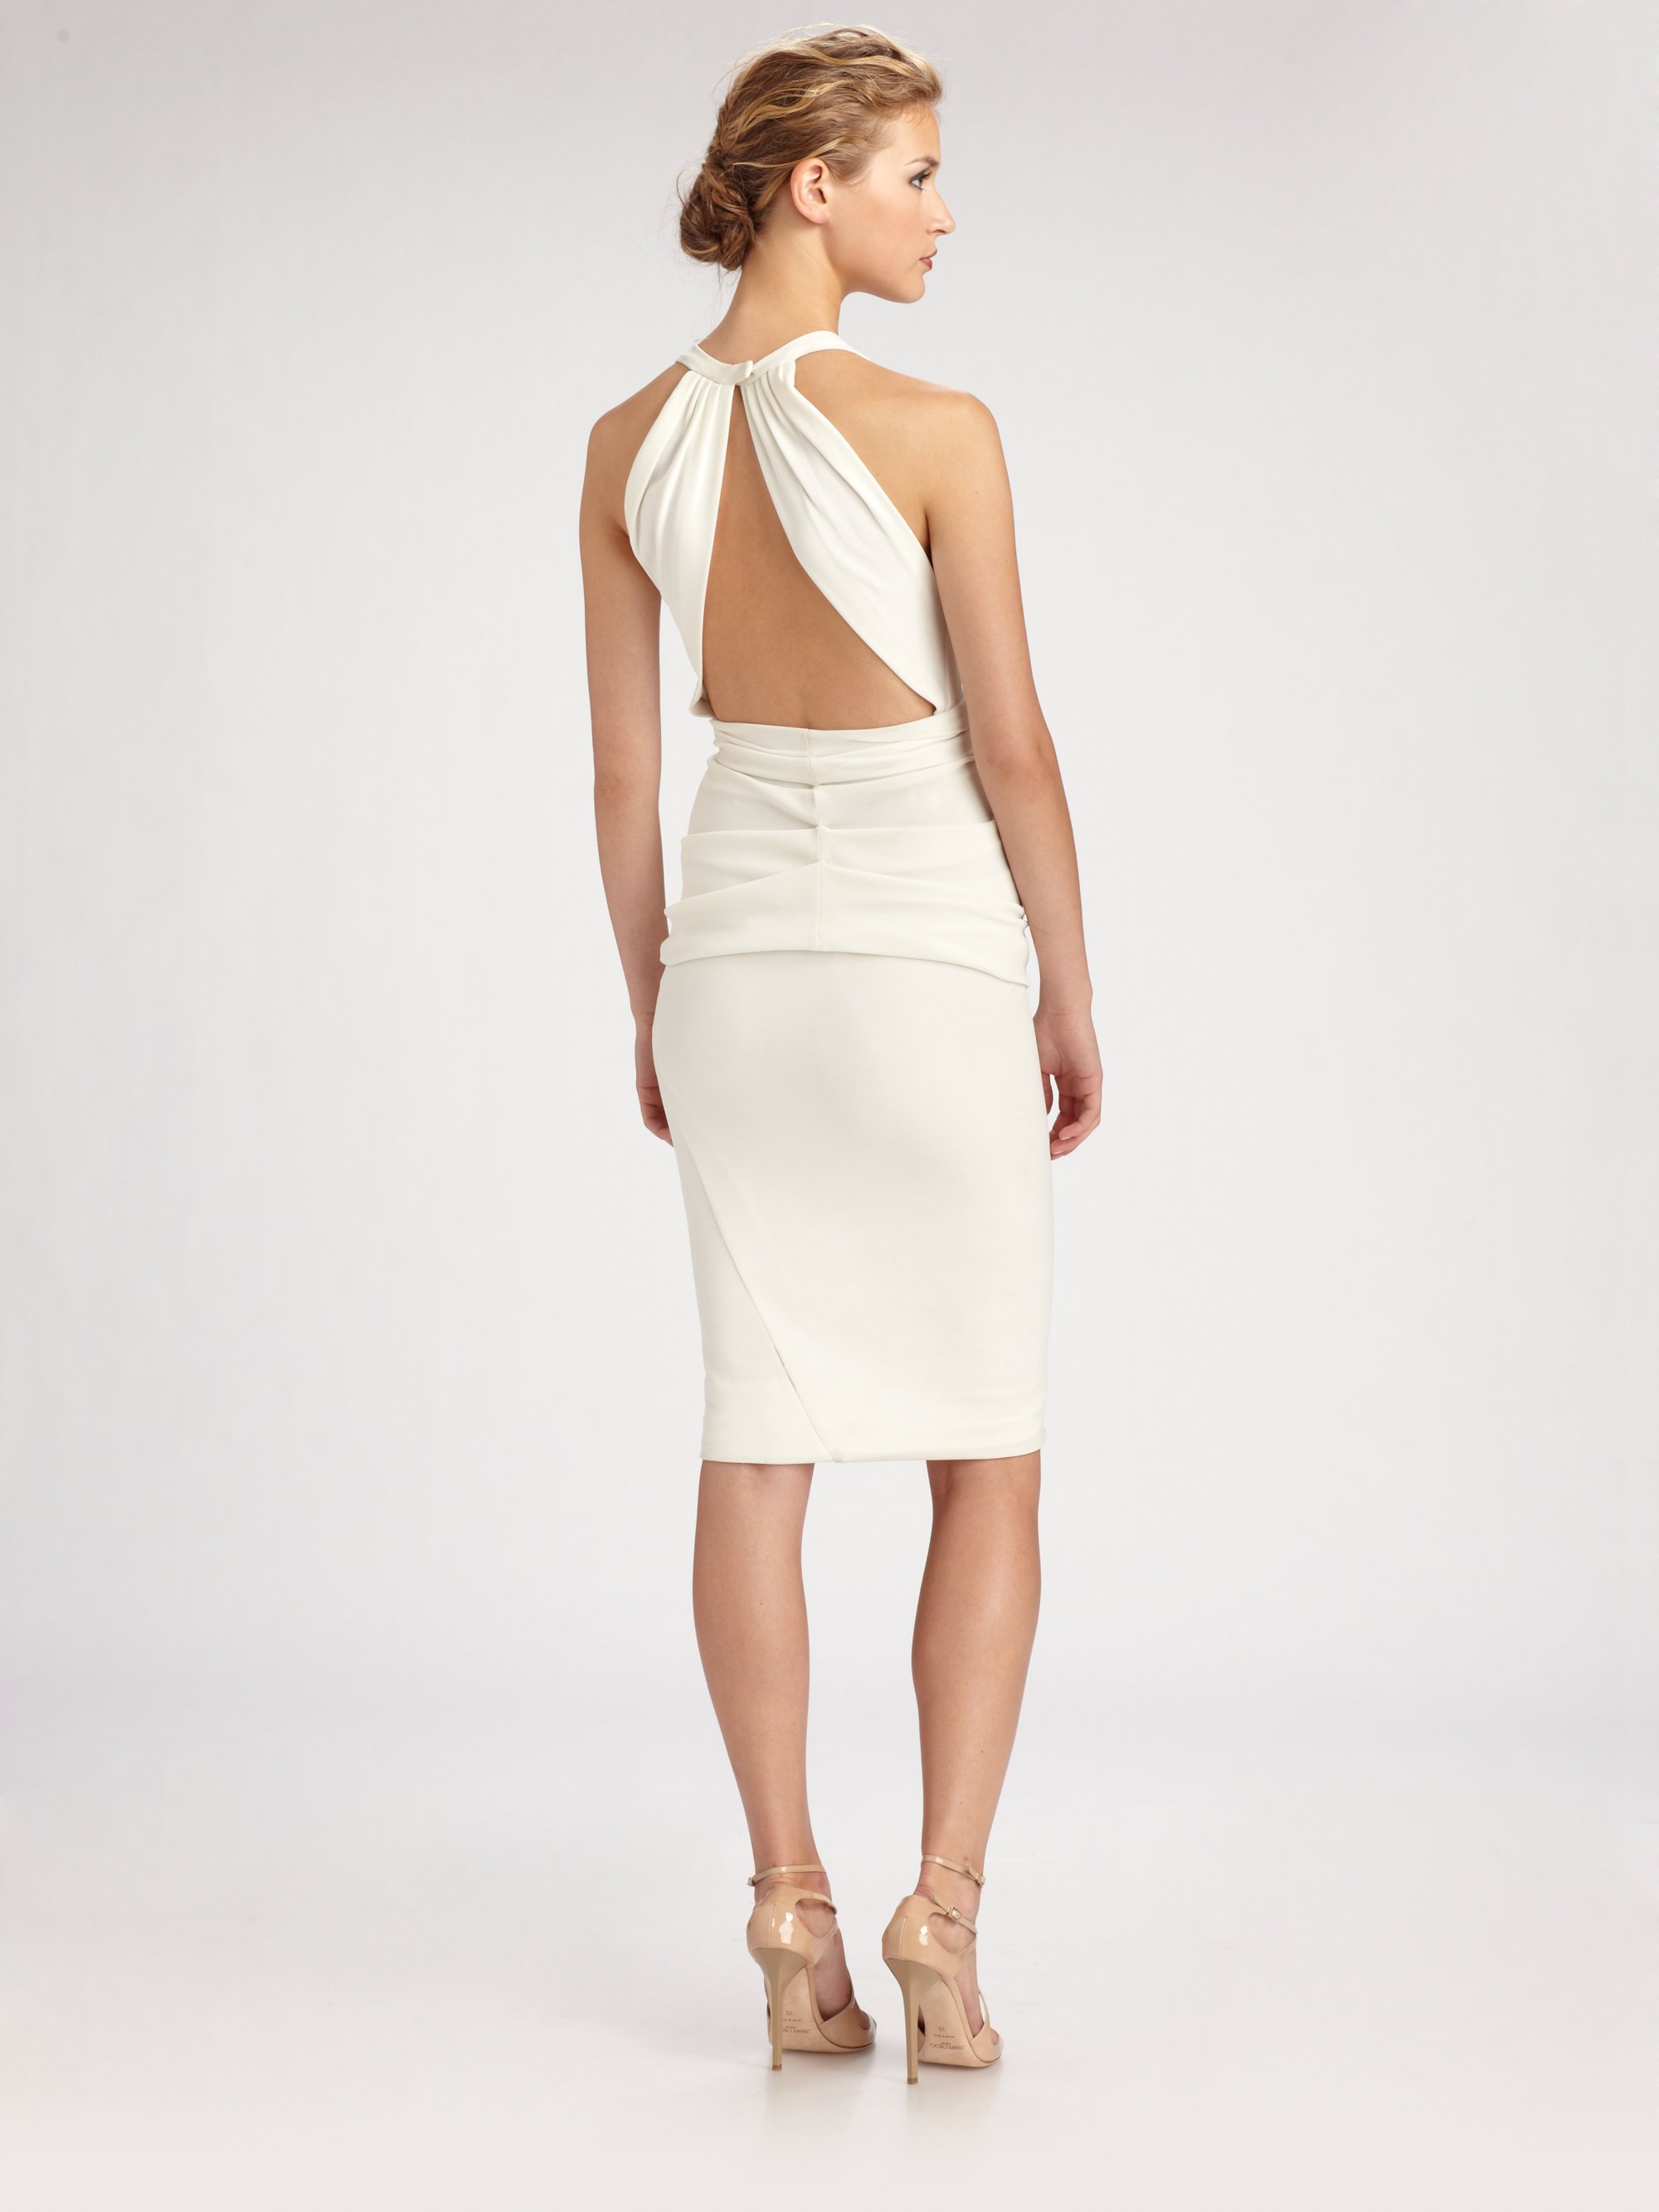 Donna karan Crepe Jersey Halter Dress in White | Lyst